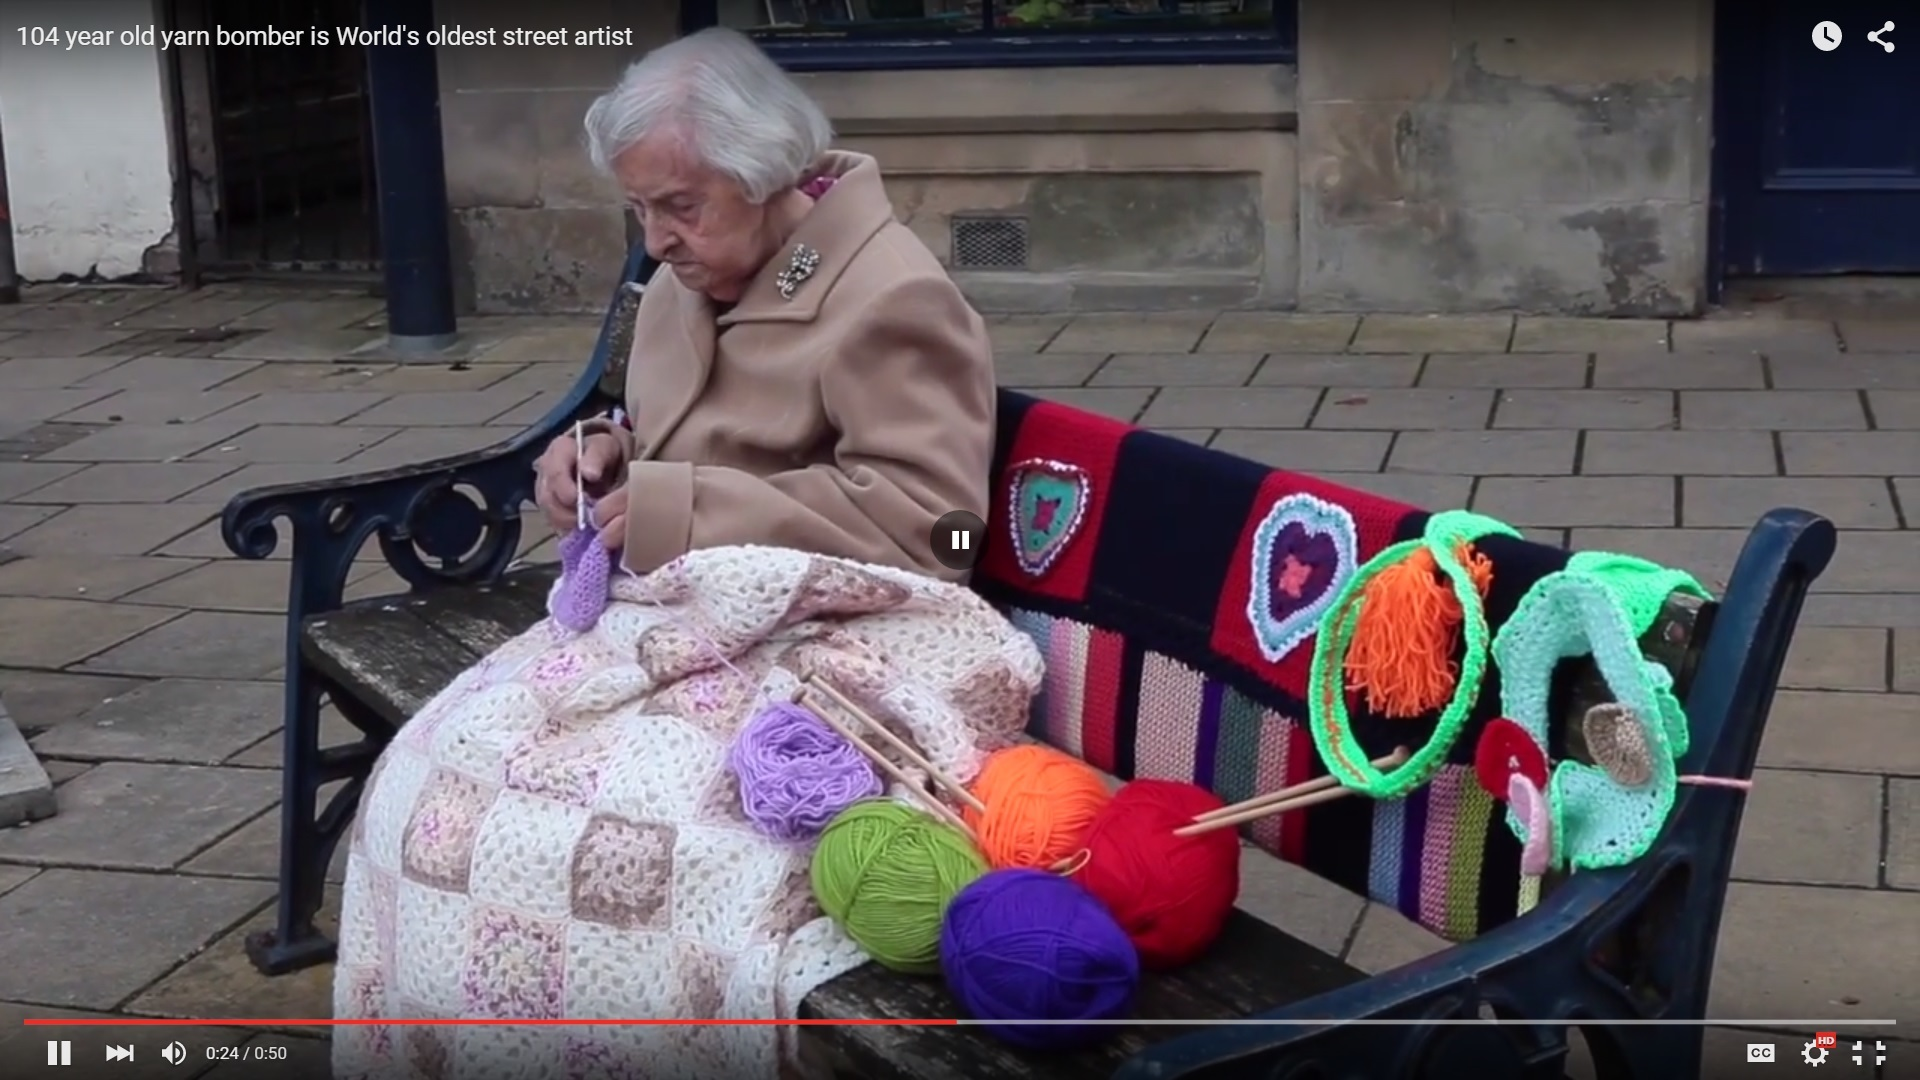 104 years old and still knitting